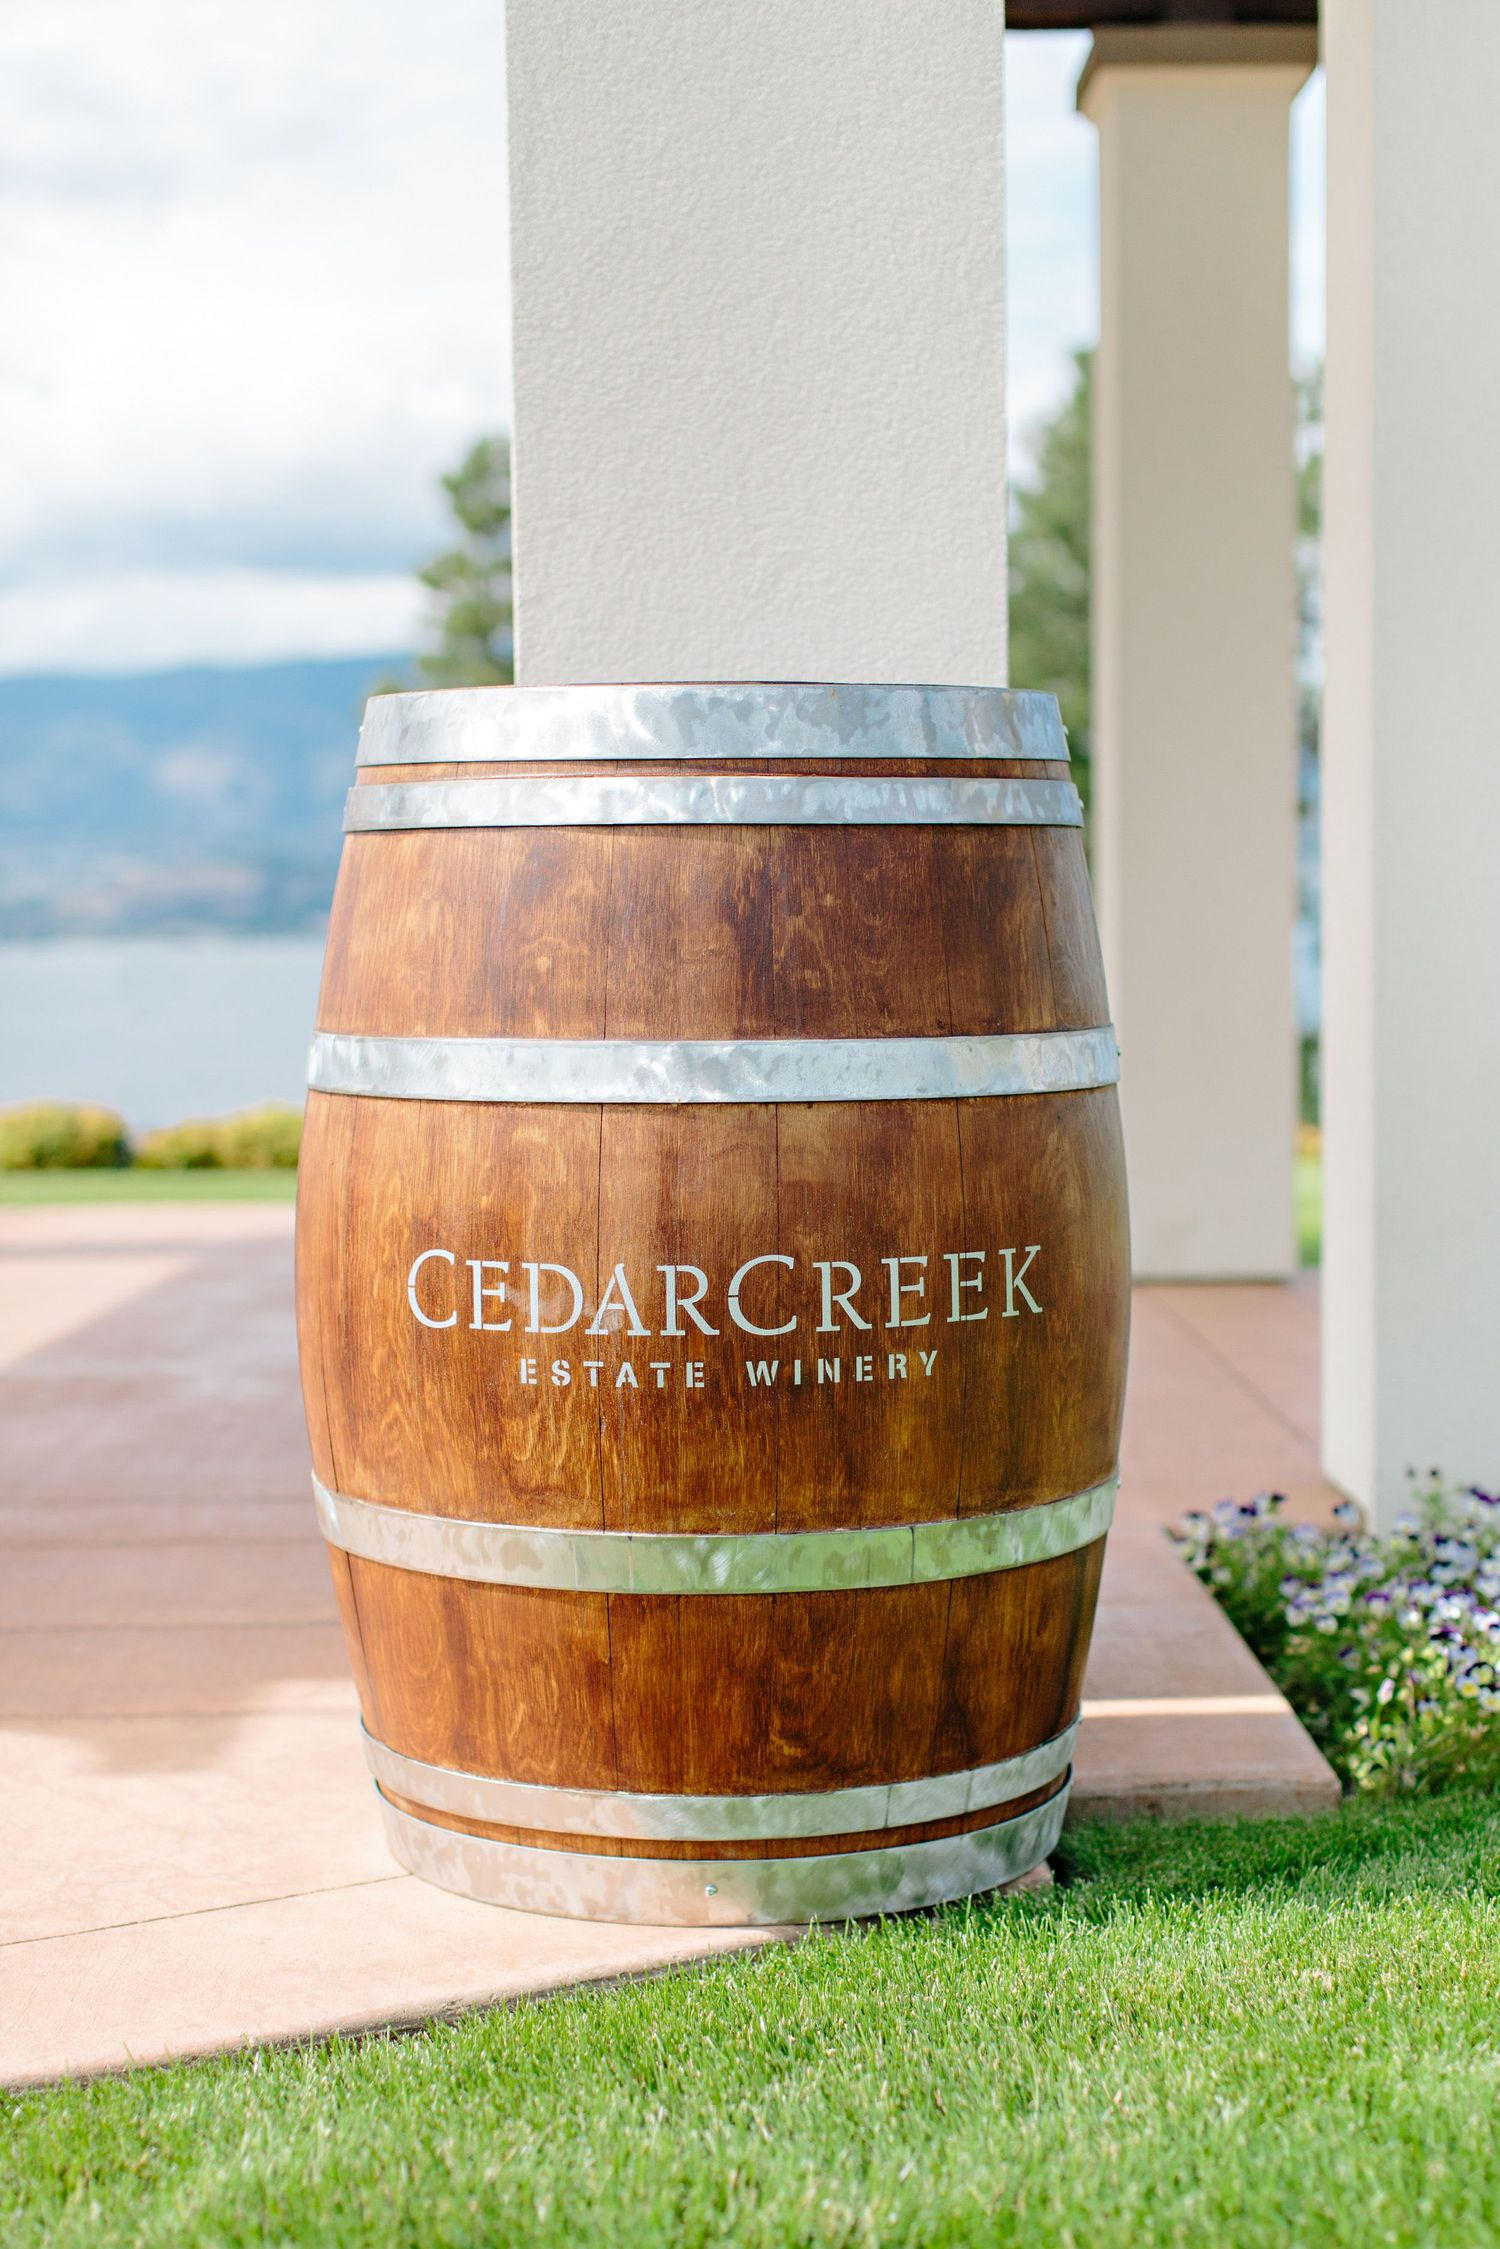 CedarCreek Winery wine barrel